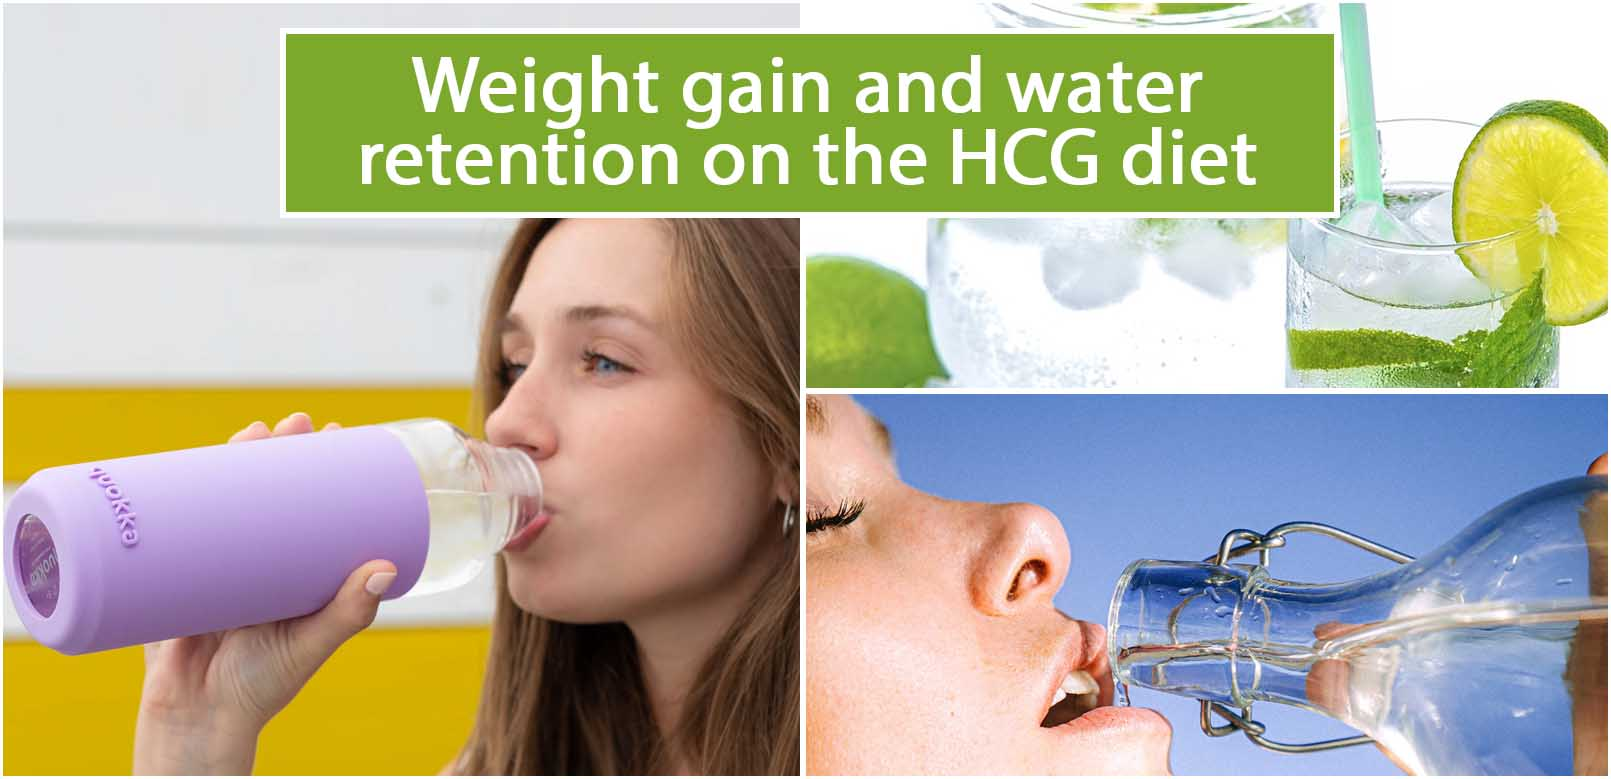 Weight gain and water retention on the HCG diet